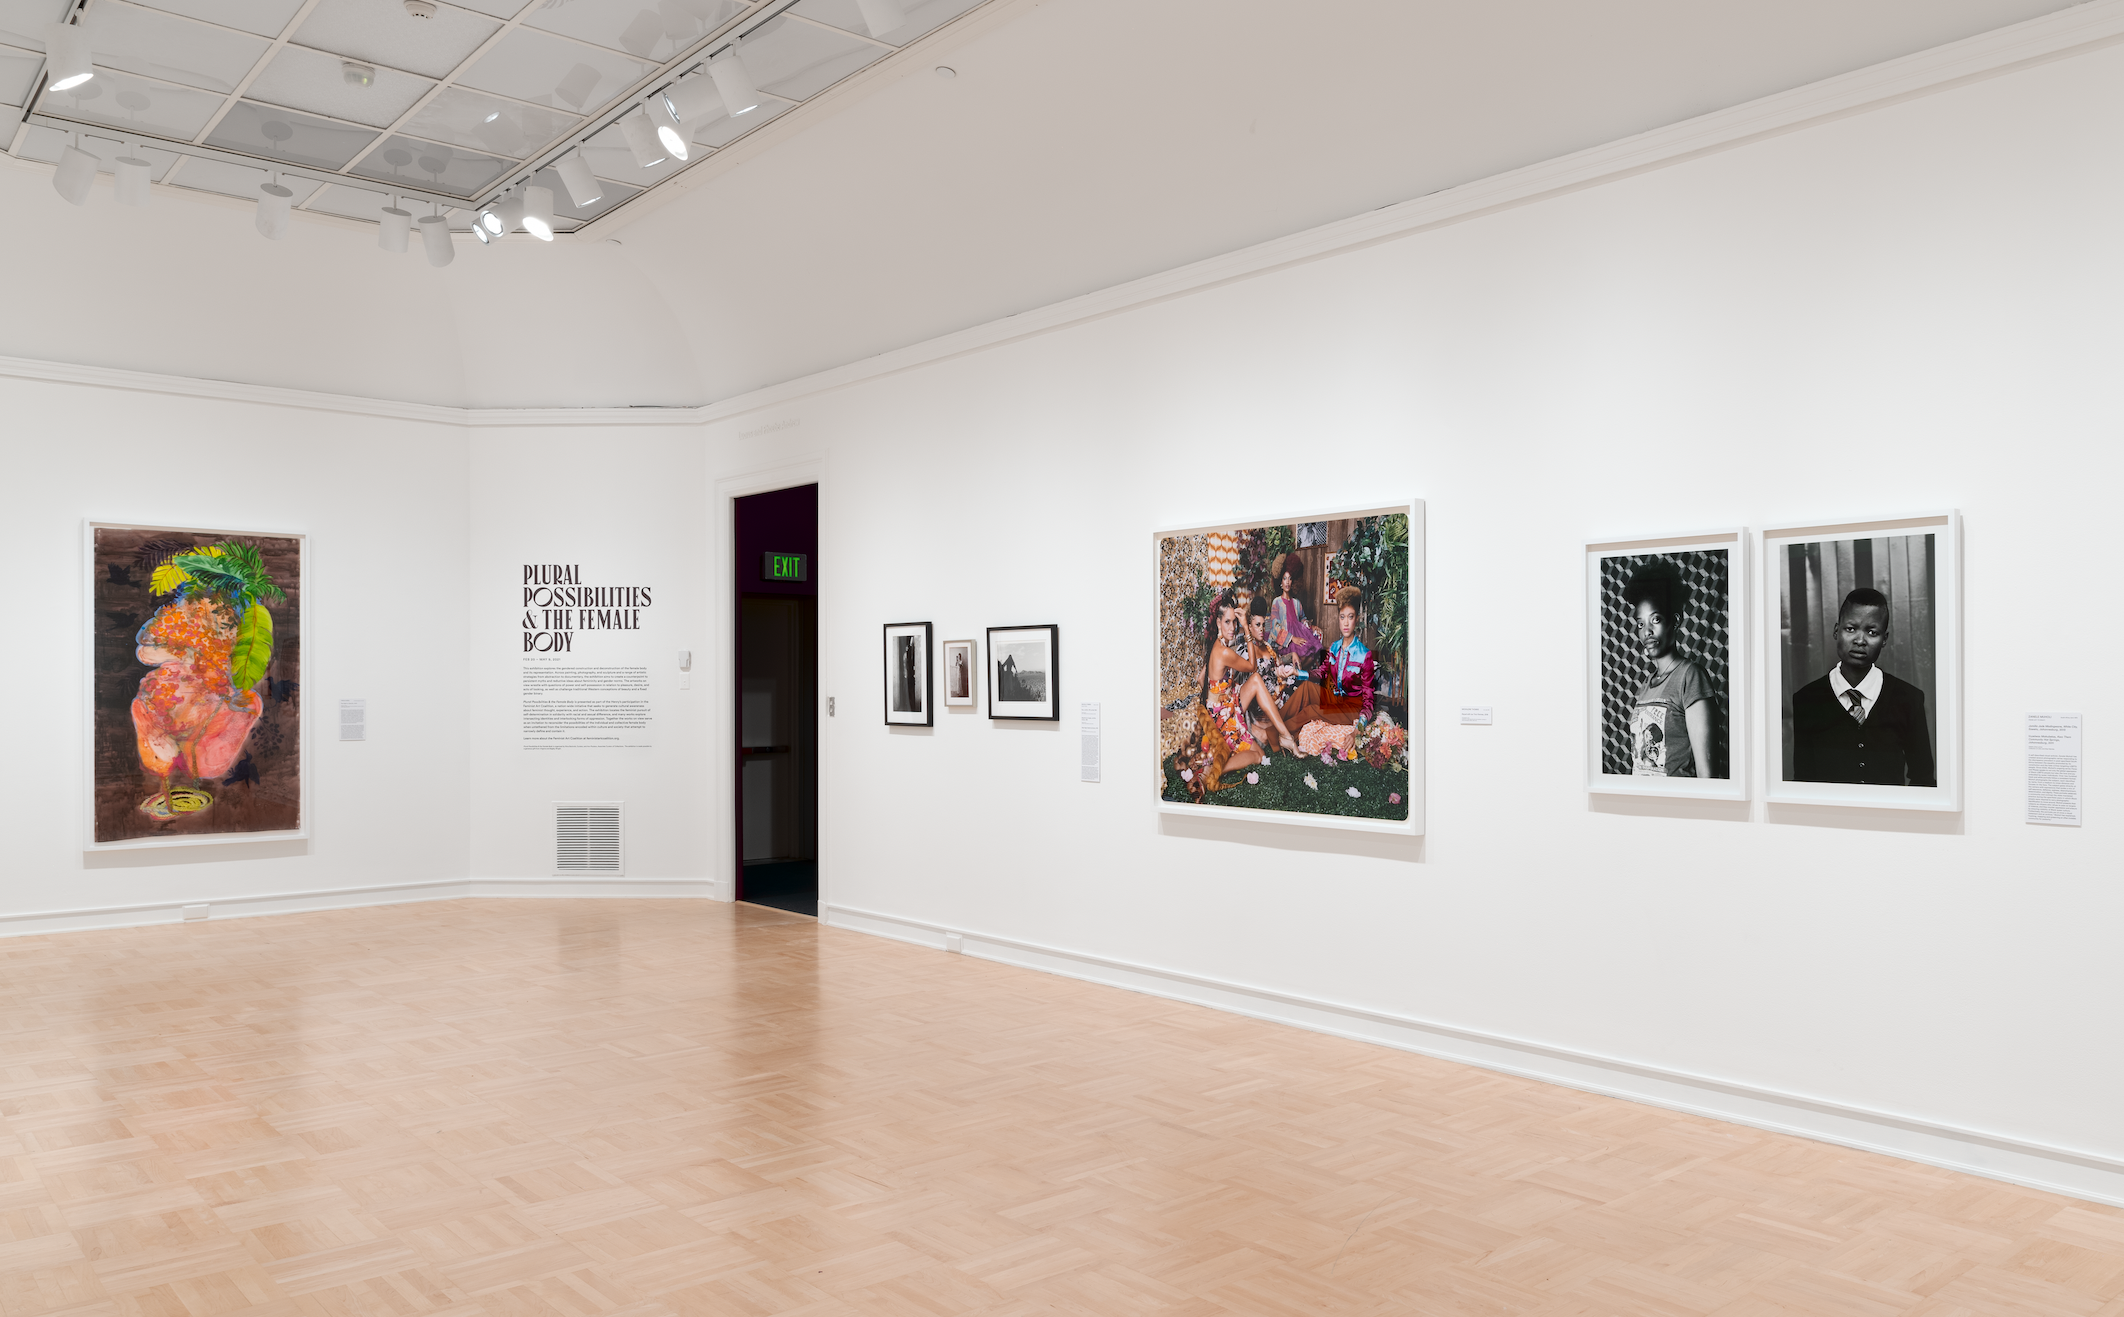 Virtual | Curatorial Perspective: 'Plural Possibilities & the Female Body' at the Henry Art Gallery